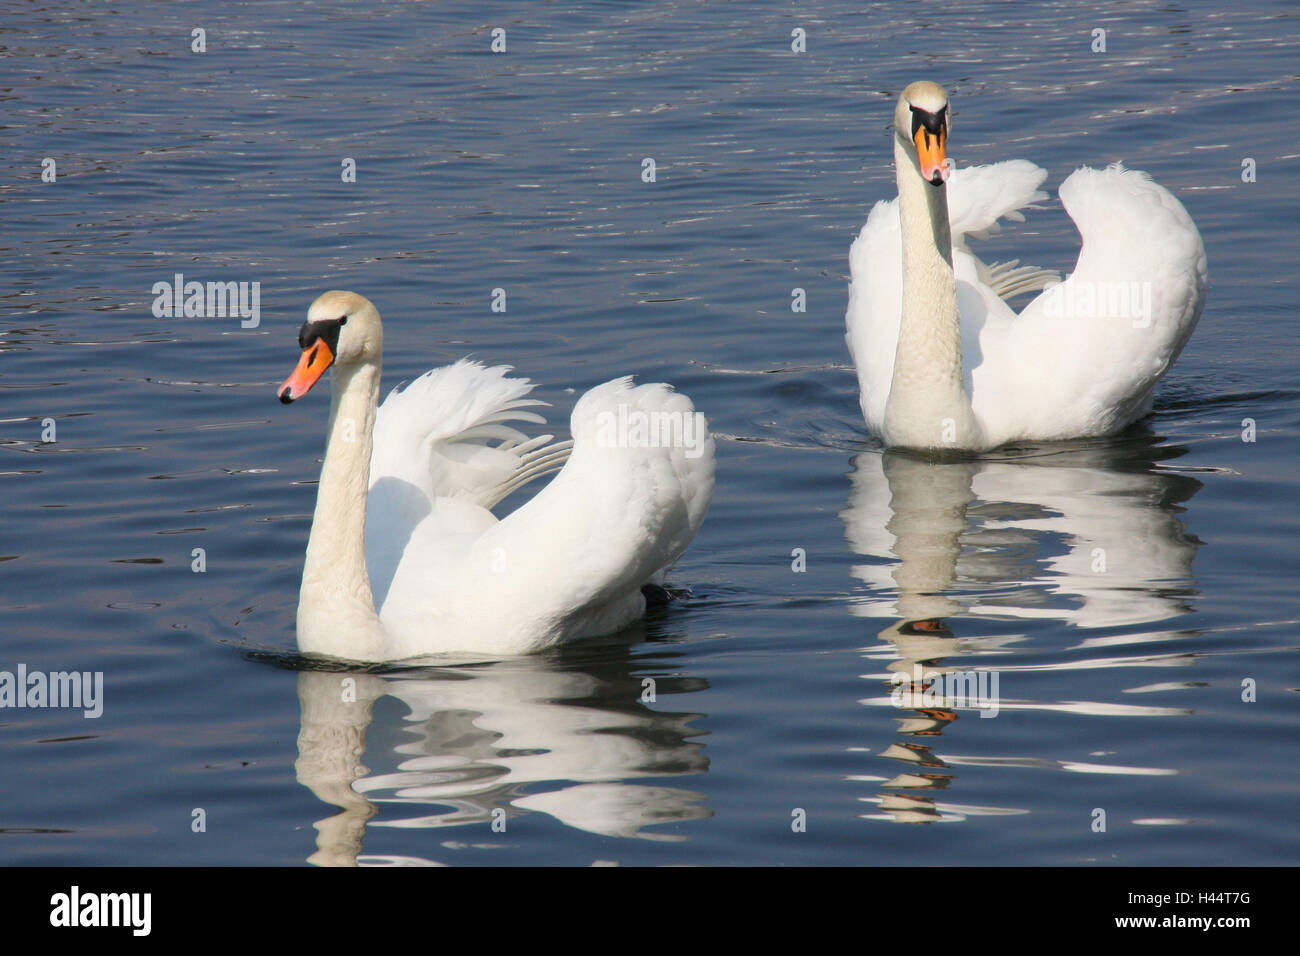 Lake, swans, couples, animals, hump swans, birds, two, swim, couple, in pairs, Poland, nature, Stock Photo